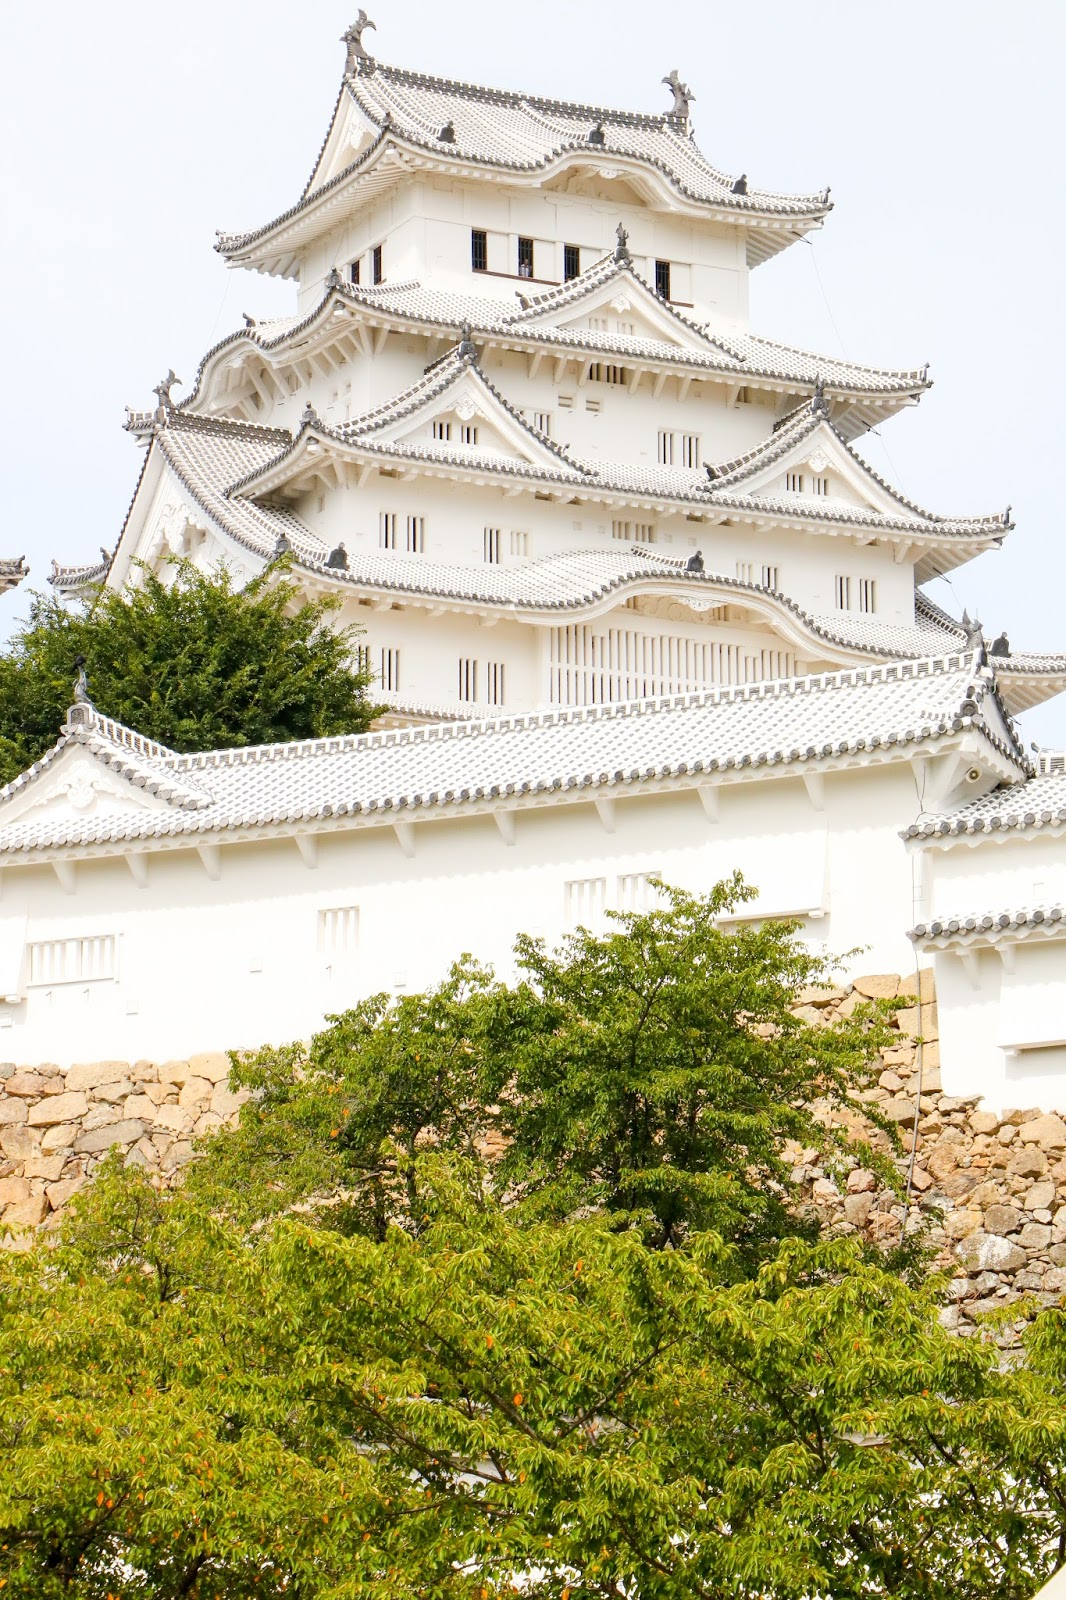 Himeji Castle - The largest castle in Japan